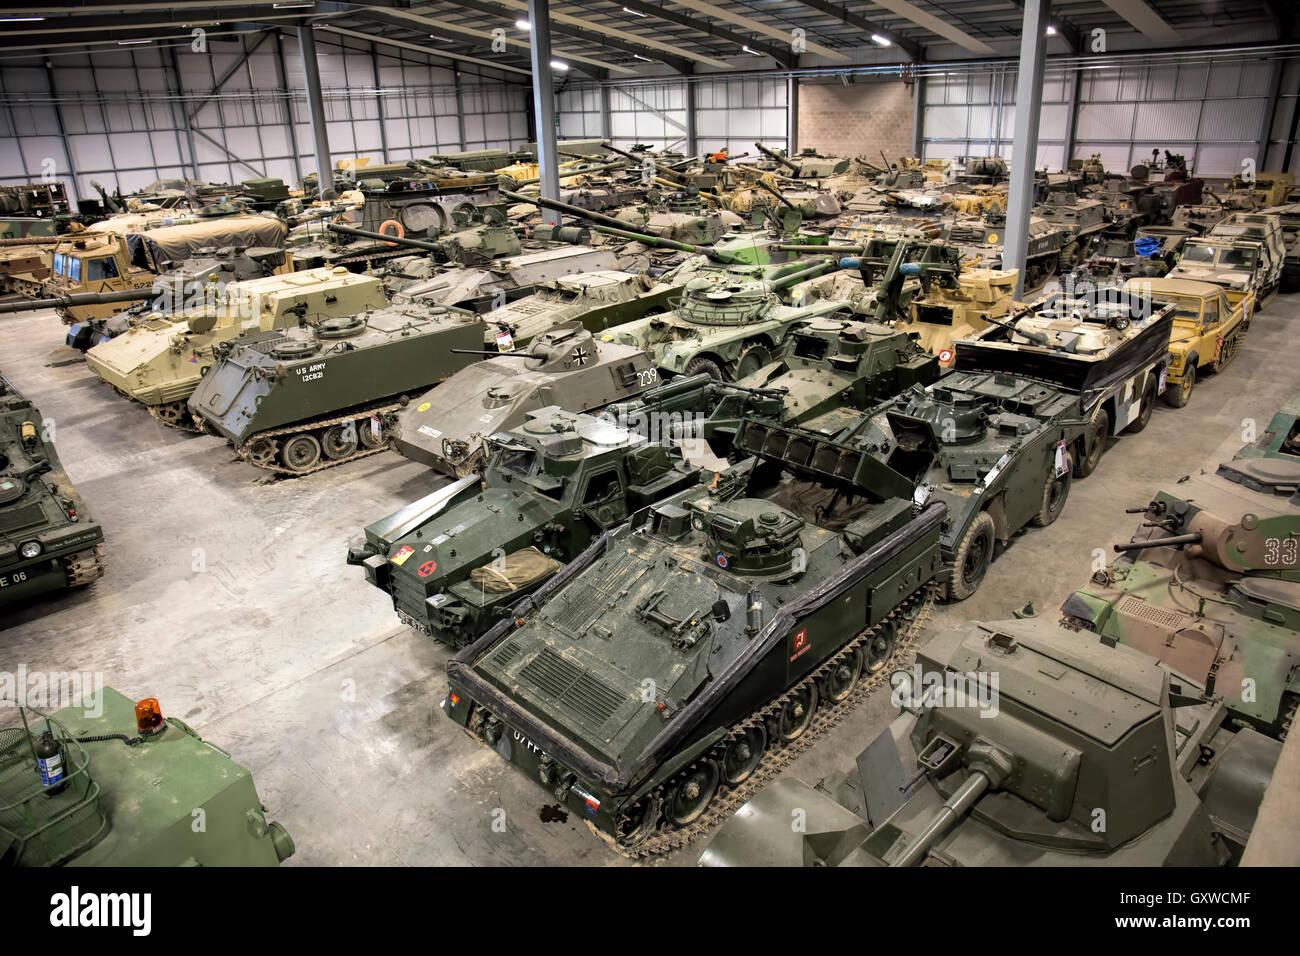 Inside the Vehicle Conservation Centre at The Tank Museum Bovington Wareham UK - Stock Image